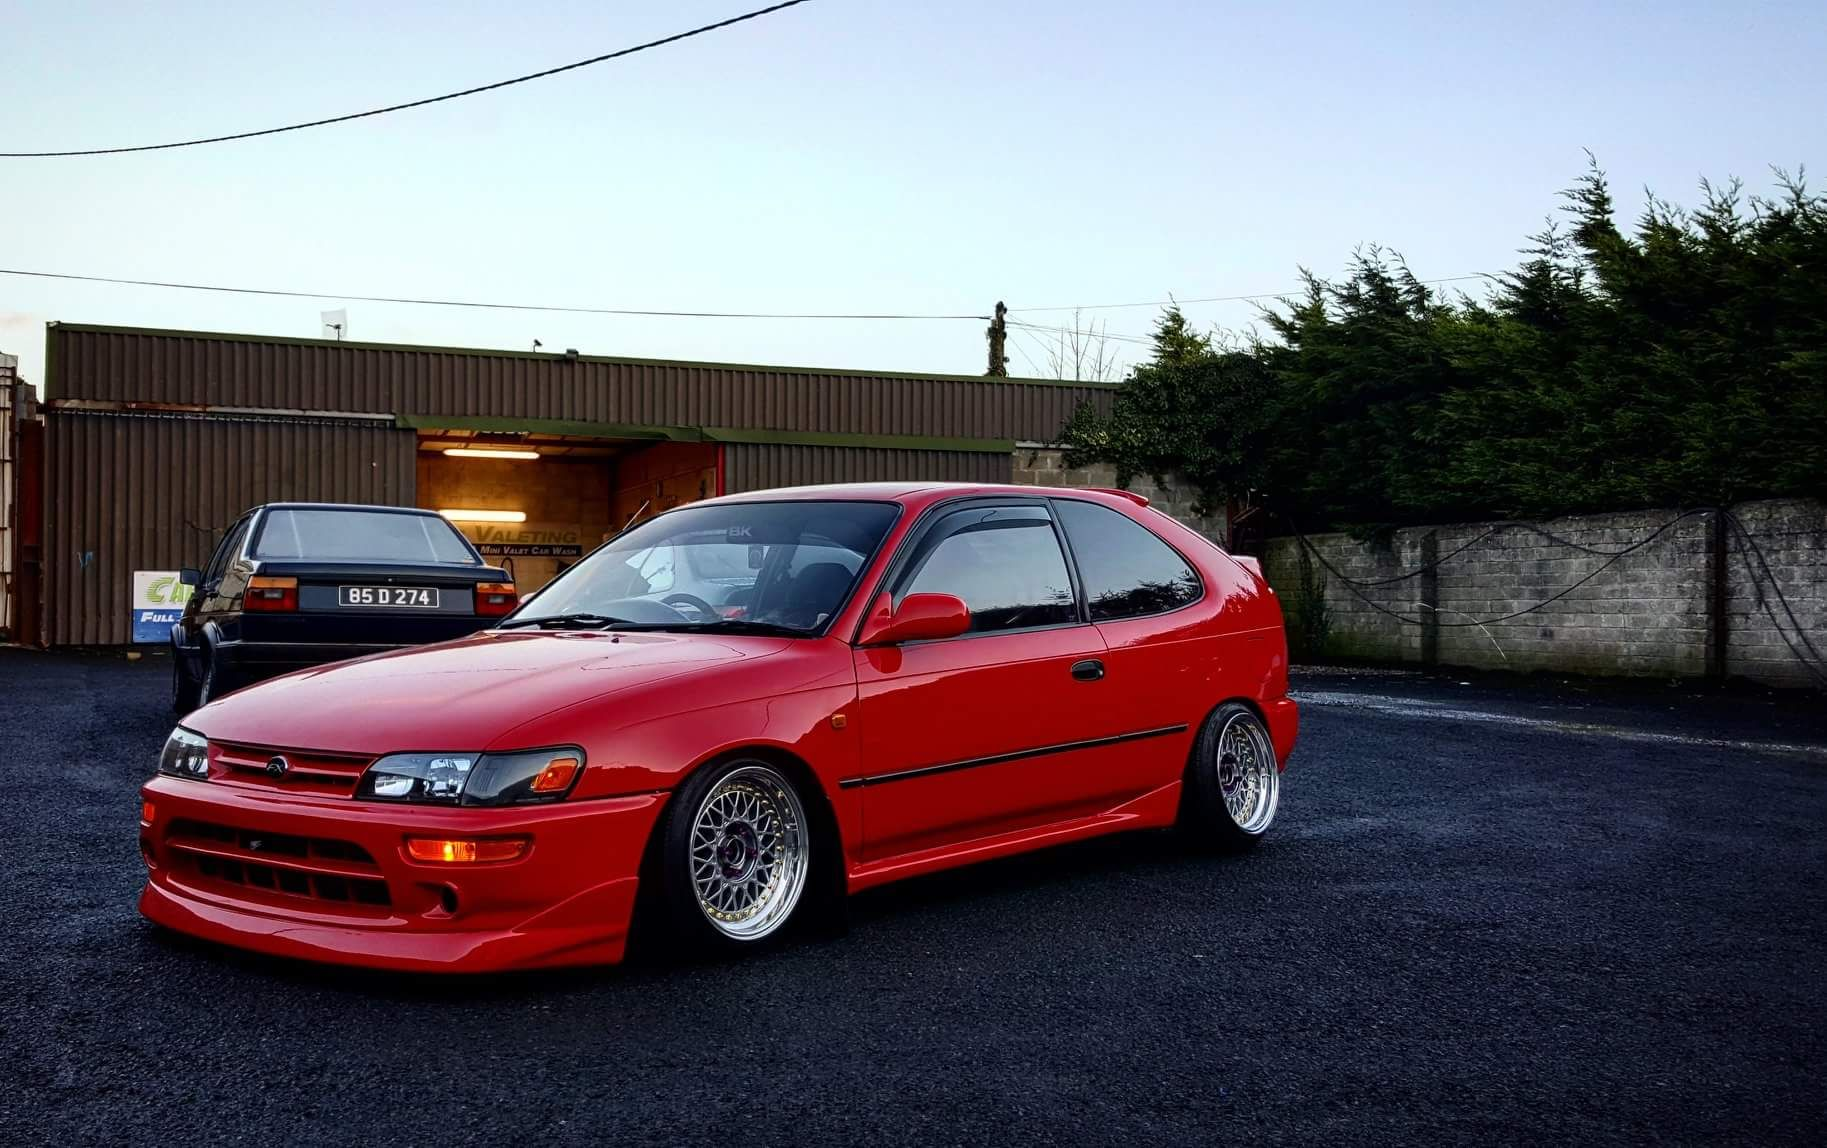 Toyota Ae101 Images - Reverse Search